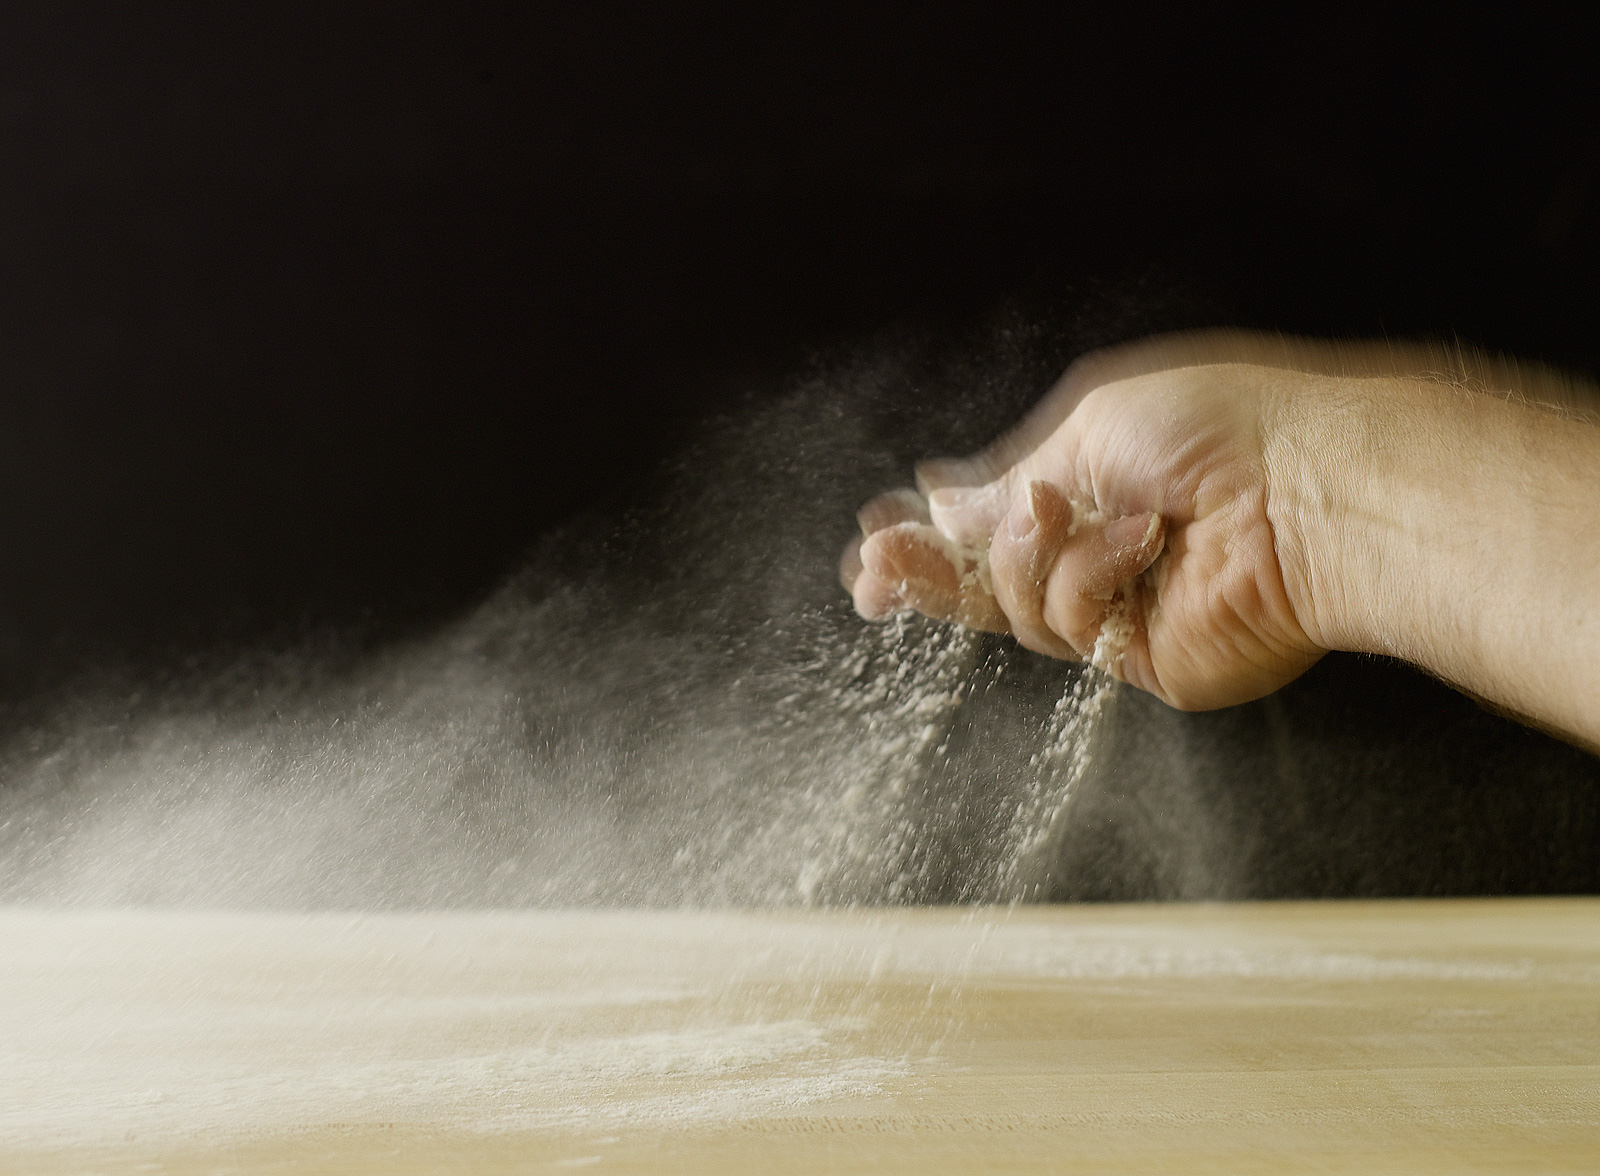 Getting ready to knead dough- Best food photography